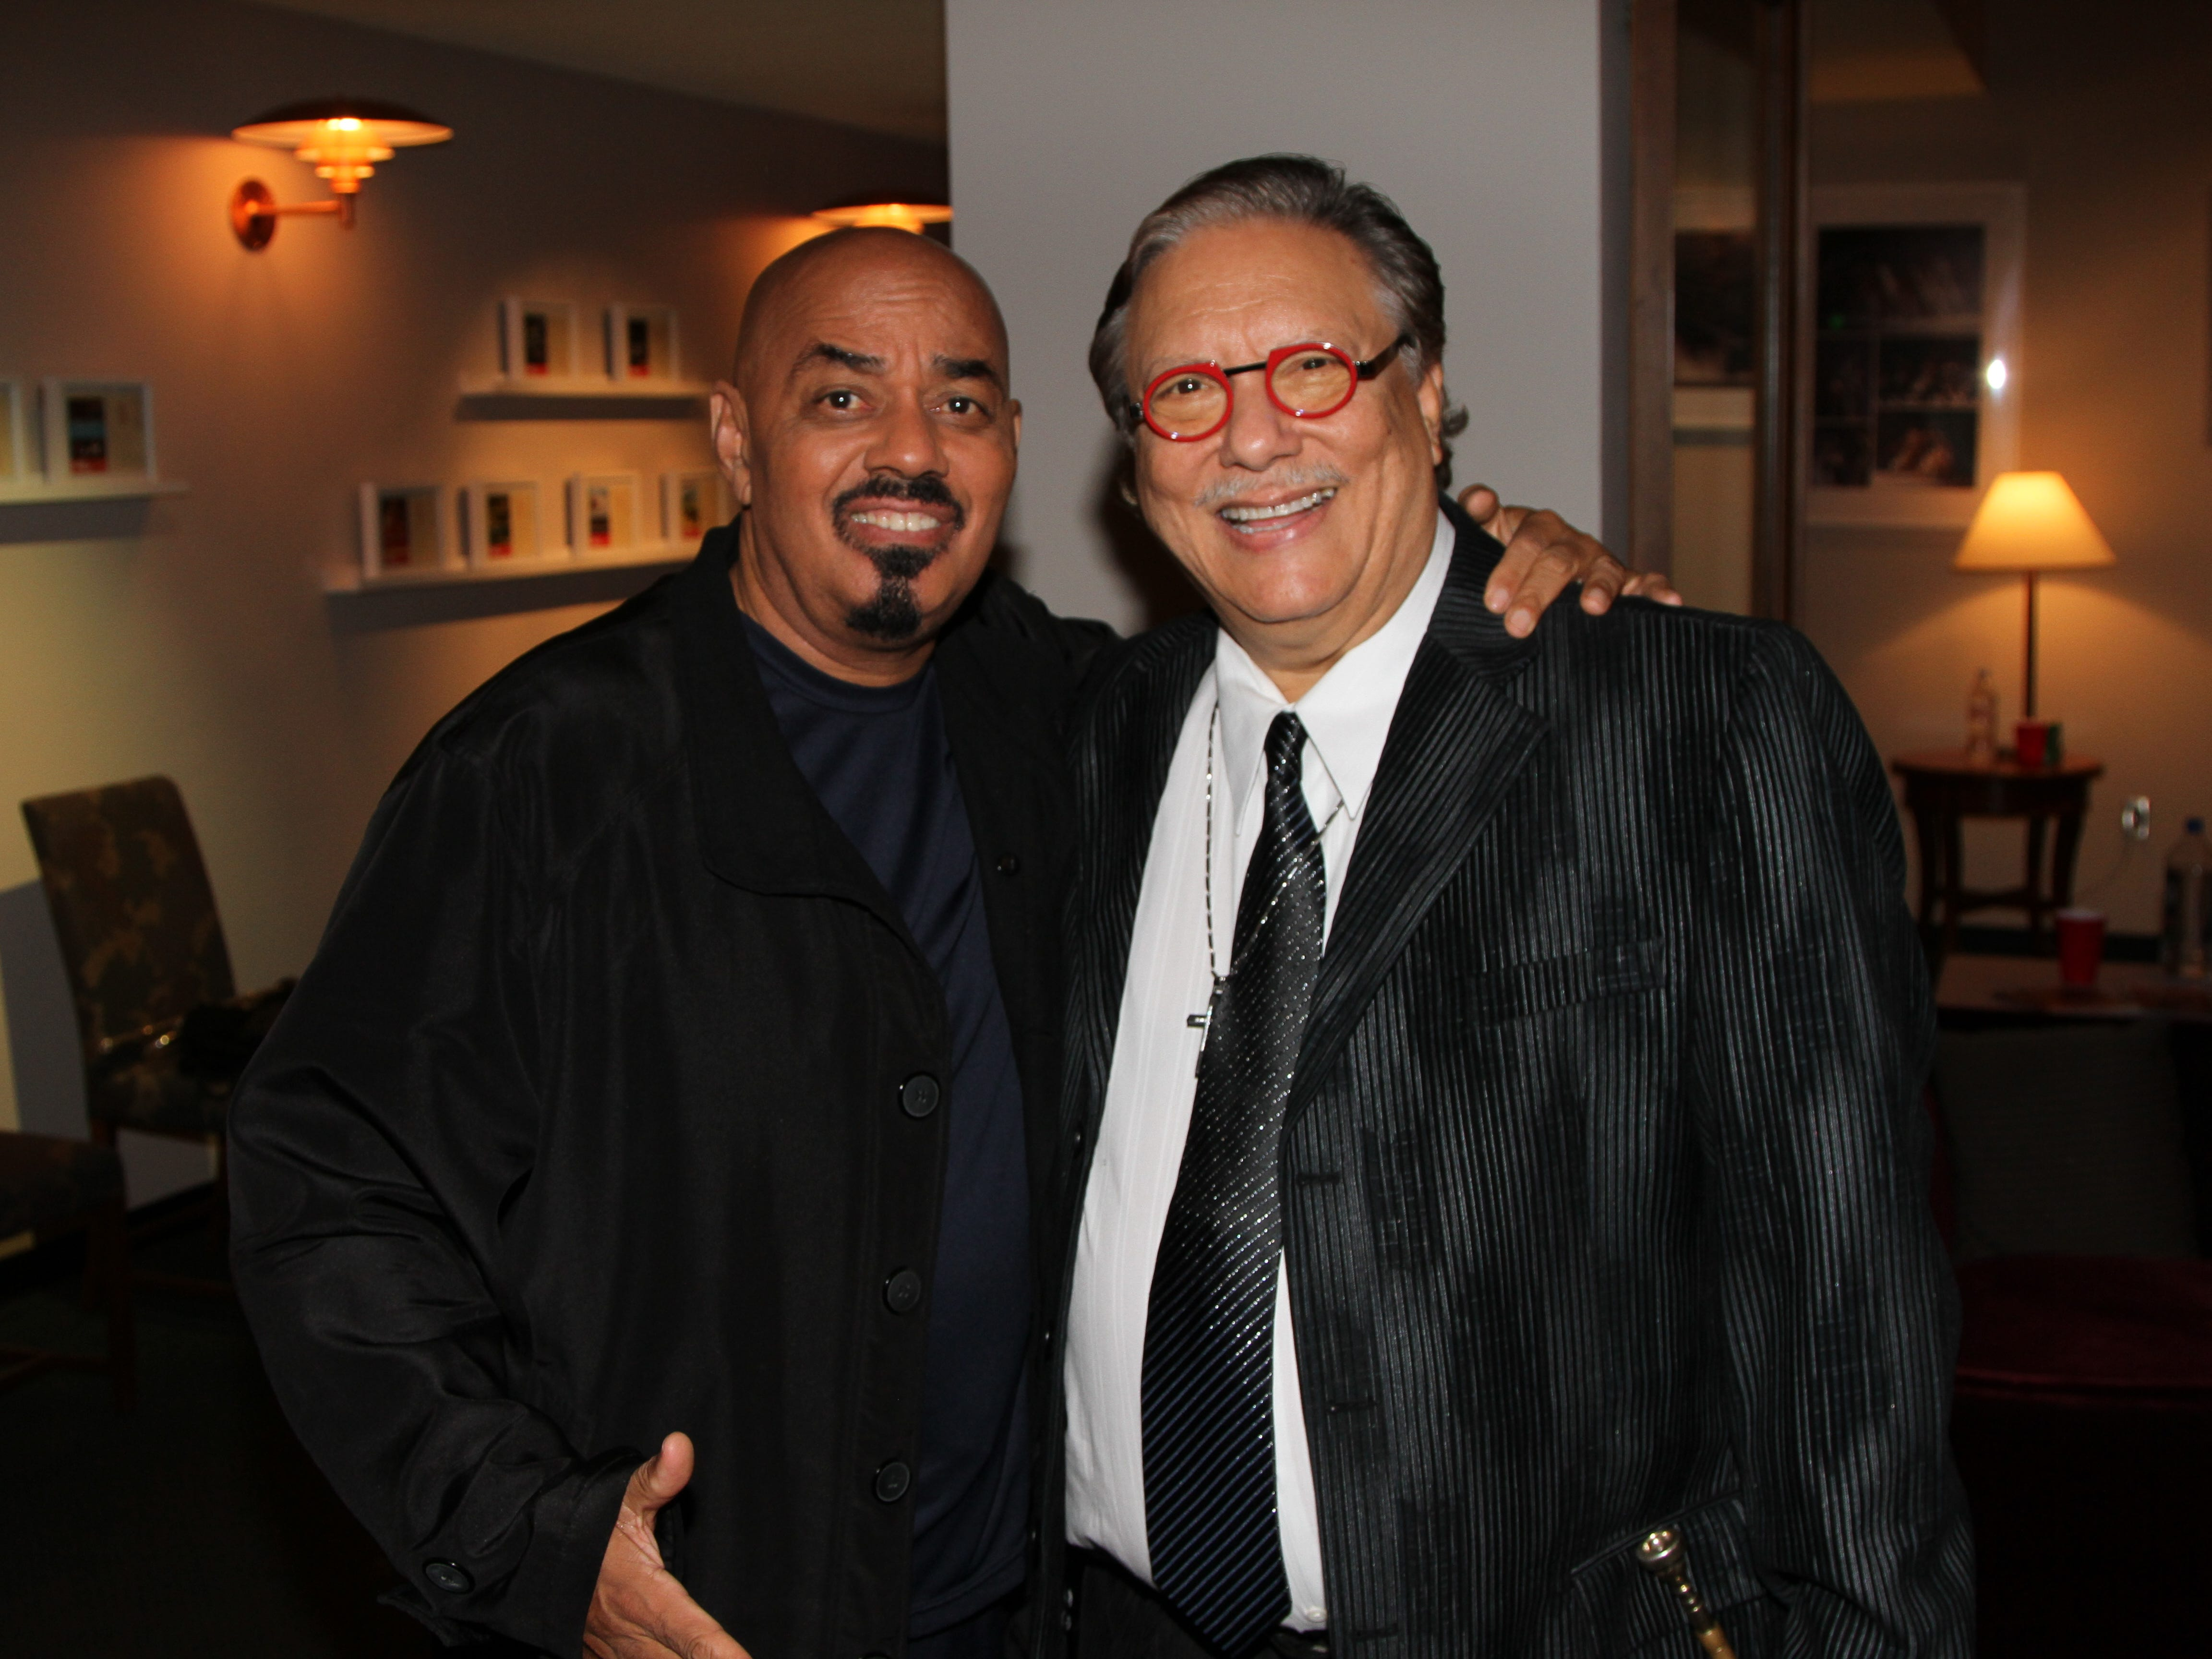 """James Ingram and Arturo Sandoval at Debbie Allen's All Star Gala """"One Night Only"""", Dec., 12, 2013 in Los Angeles."""